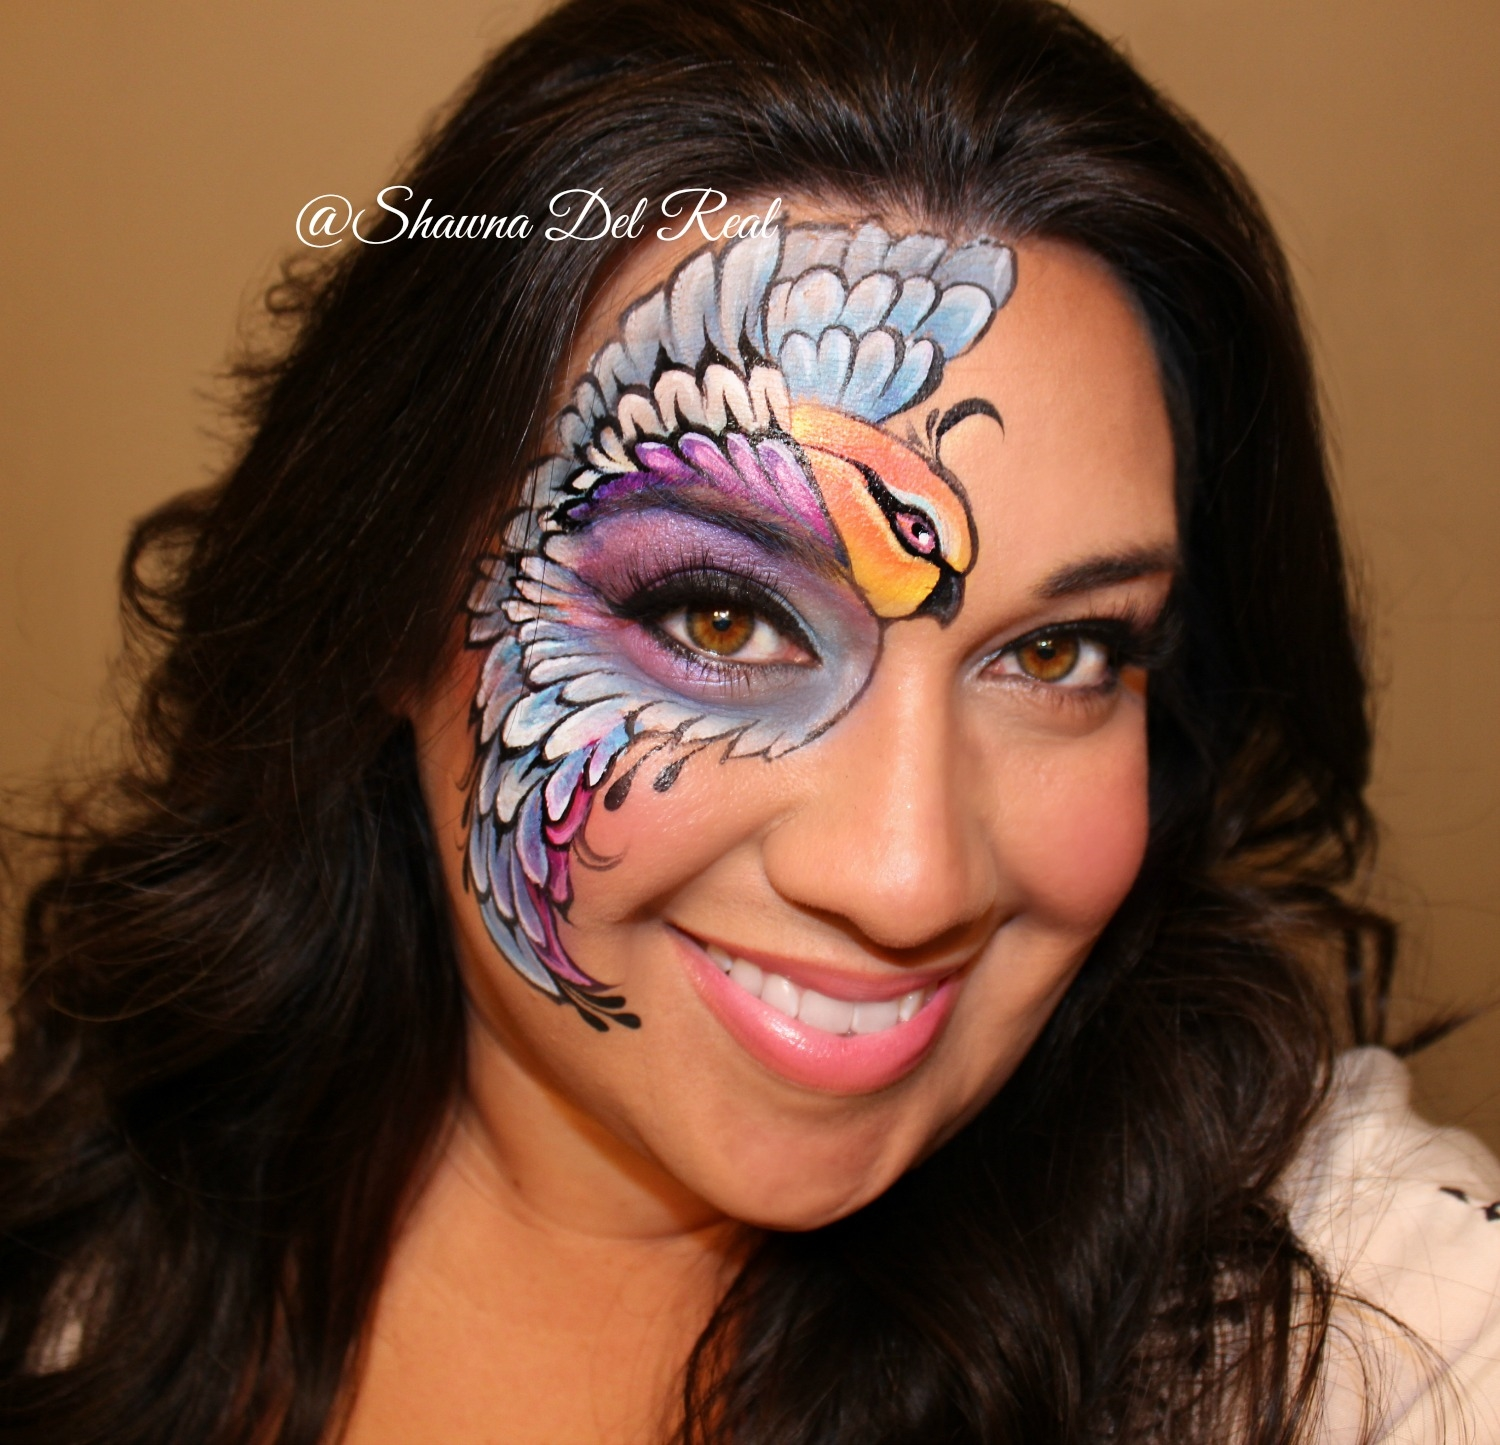 Shawna D. Make-up Birds Of A Feather Face Painting